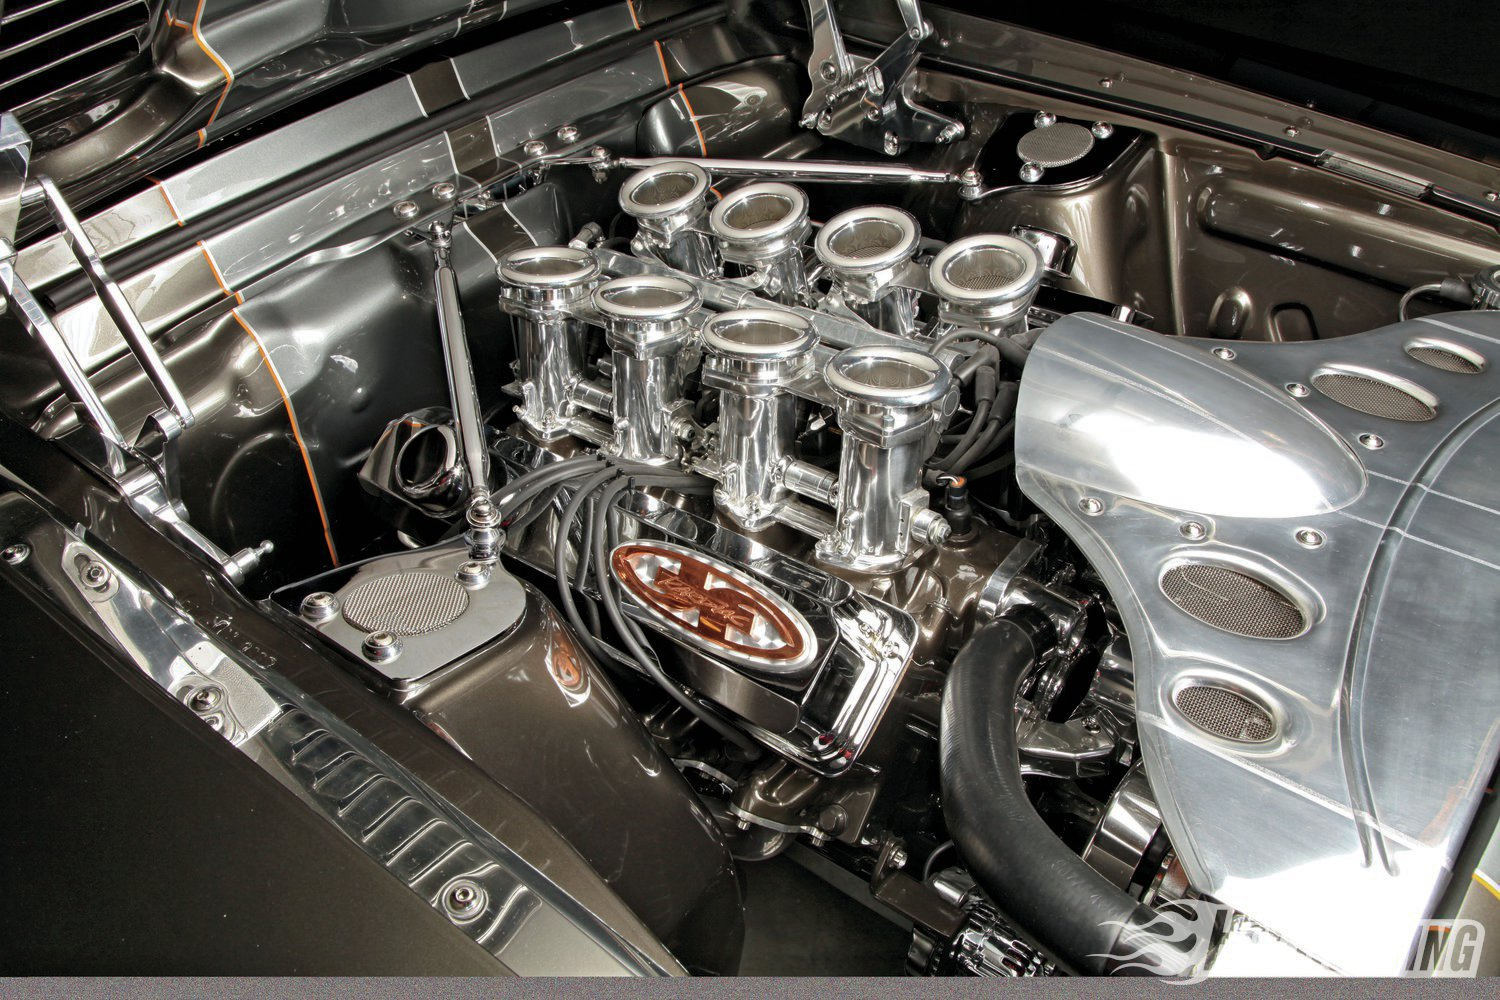 Don't let the dazzle fool you; beneath that paint and chrome lurks 427 healthy cubic inches of side-oiler power, a Tremec five-speed transmission, and Total Control Products suspension fore and aft. If Gordon Phillips' Shelby is familiar to you, it's because we mentioned it in our 2012 SEMA Show coverage in the Mar. '13 issue of PHR.